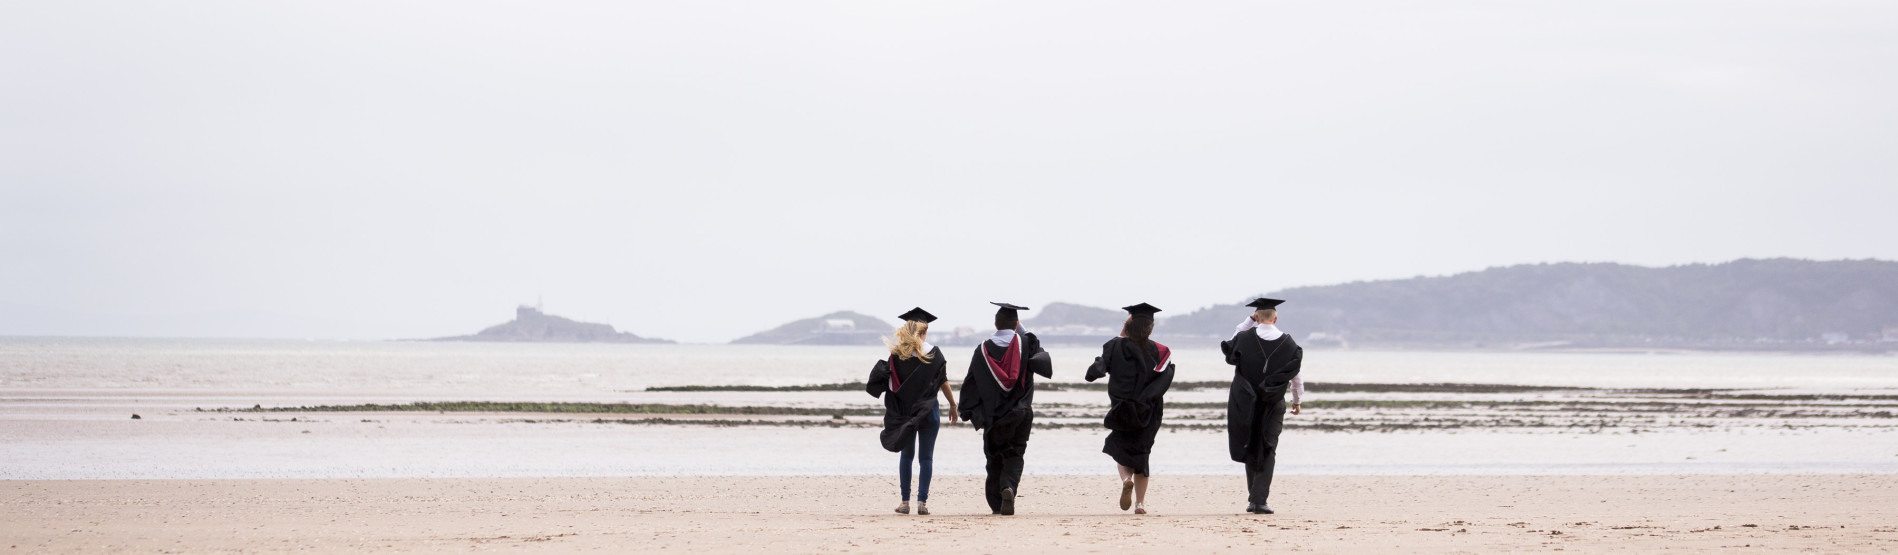 Recent graduates in robes walking away on the beach